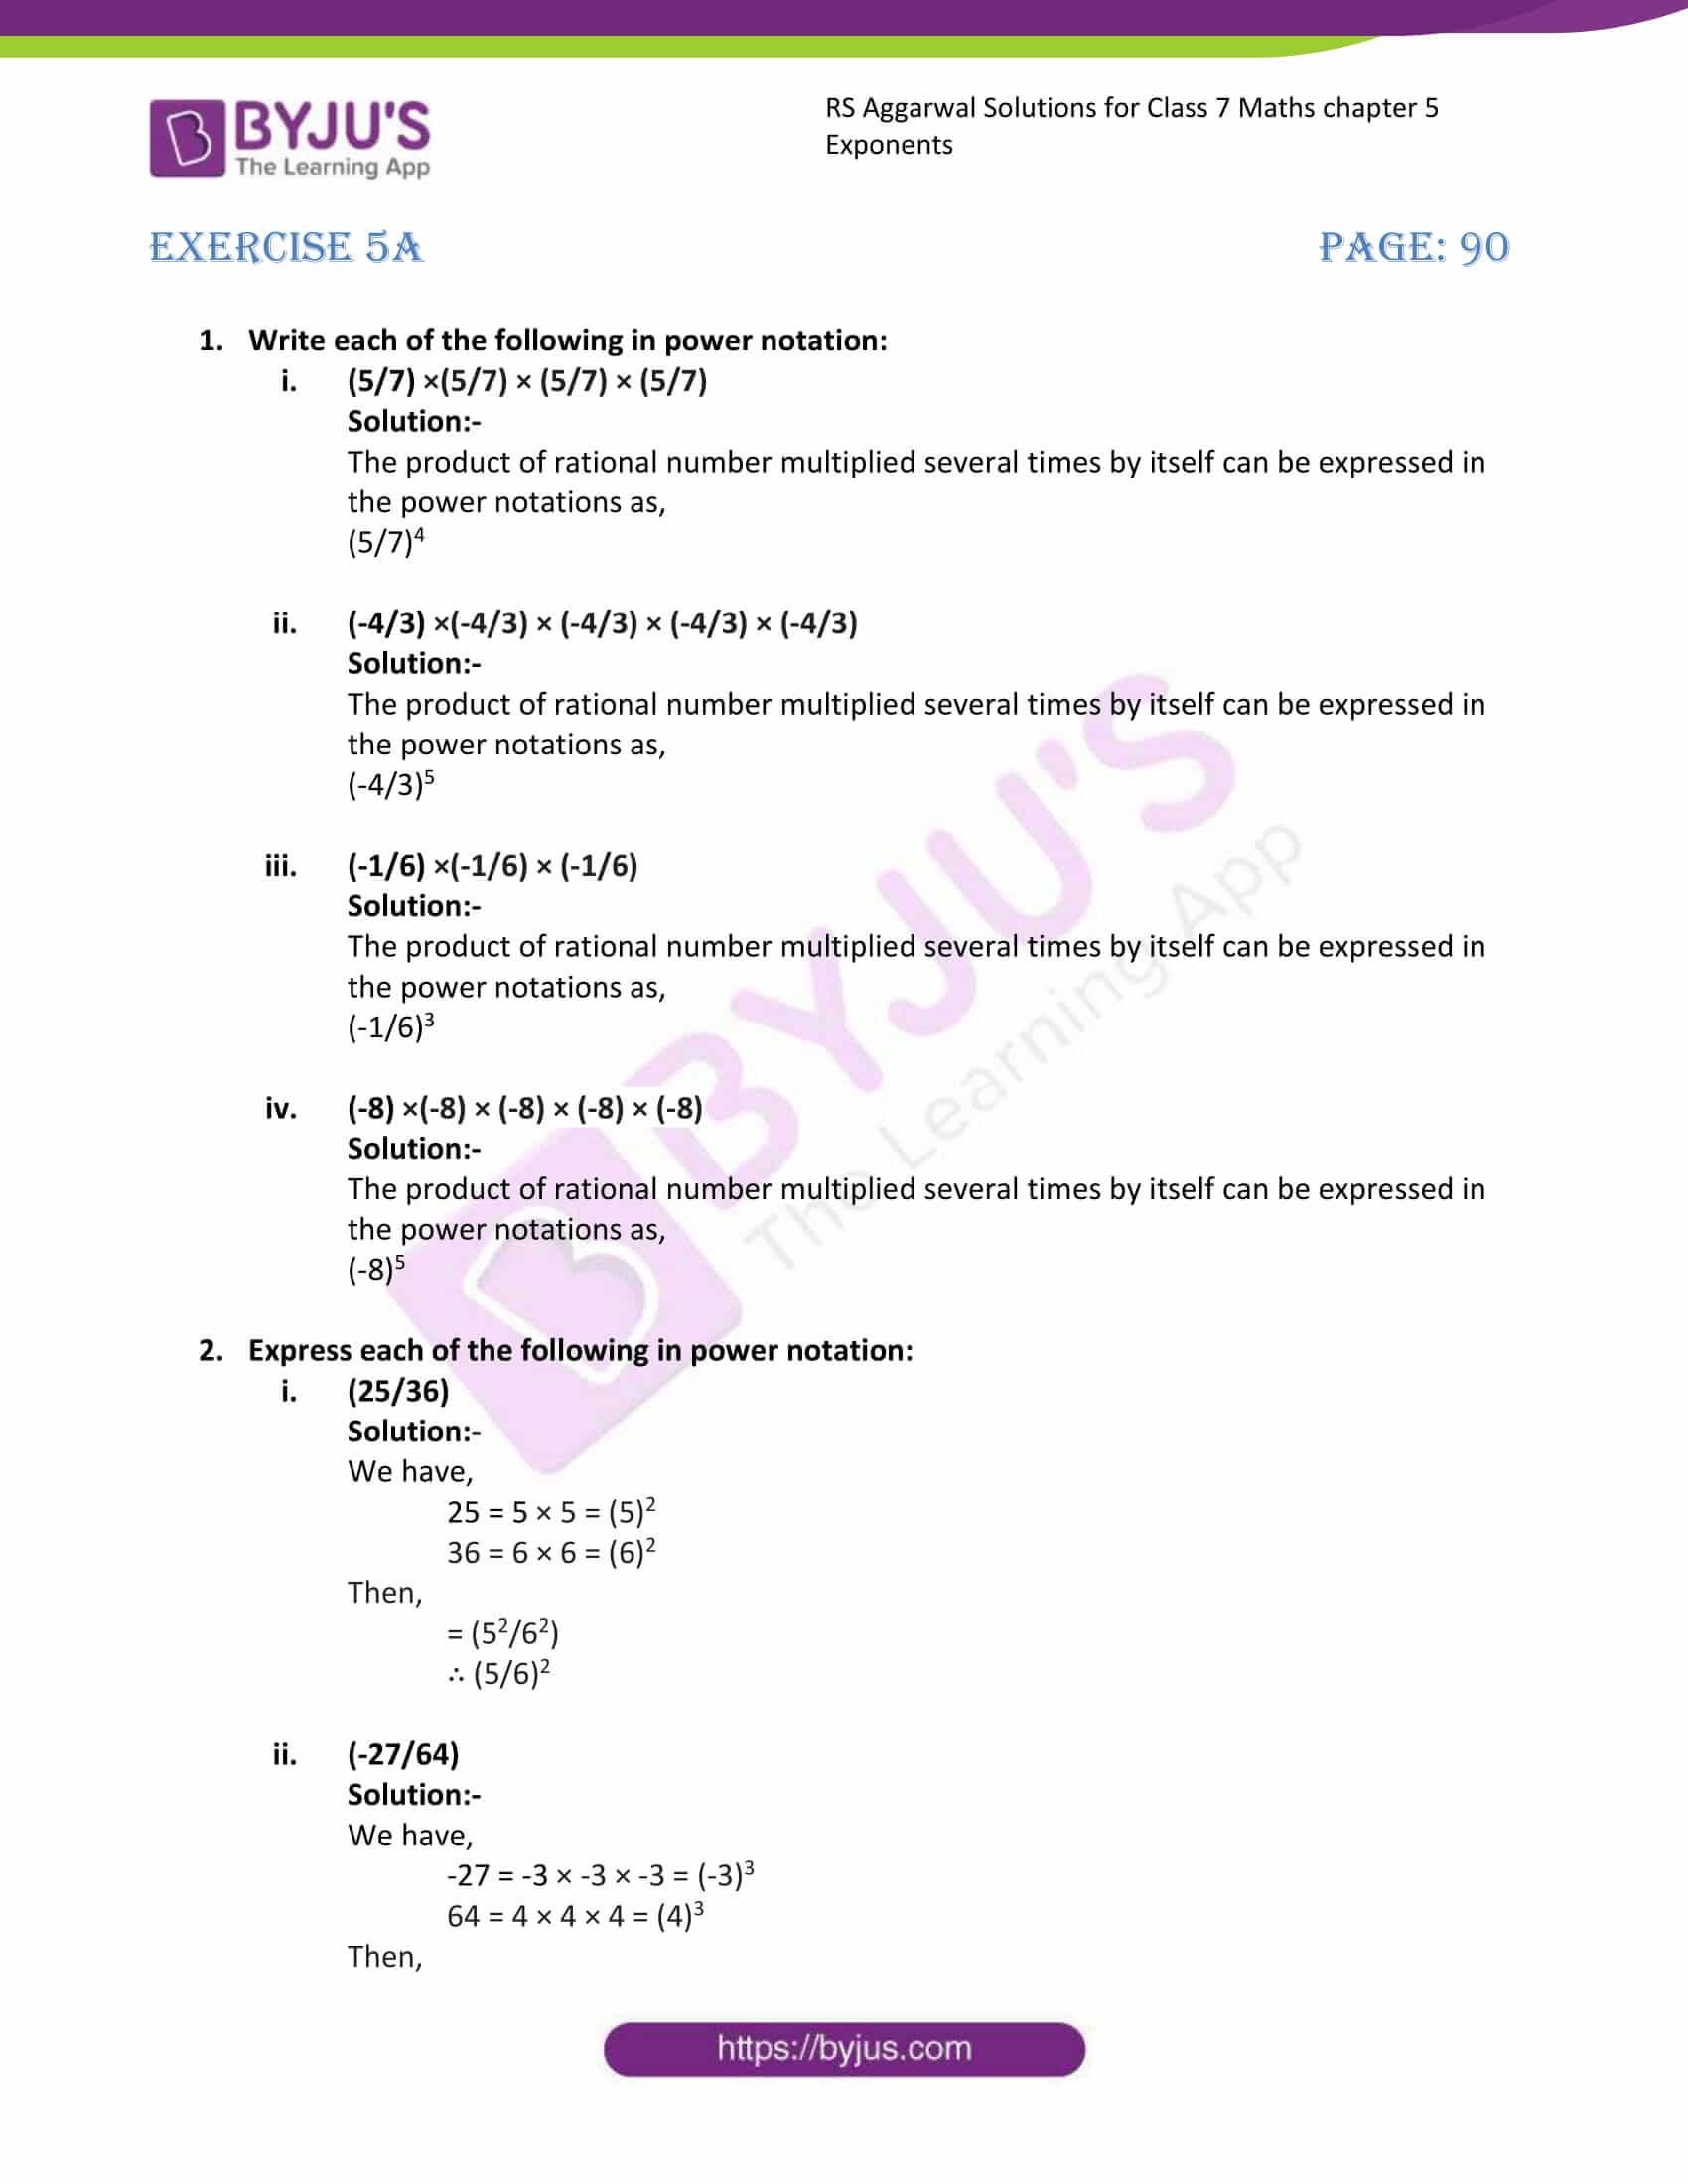 rs aggarwal solution class 7 maths chapter 5